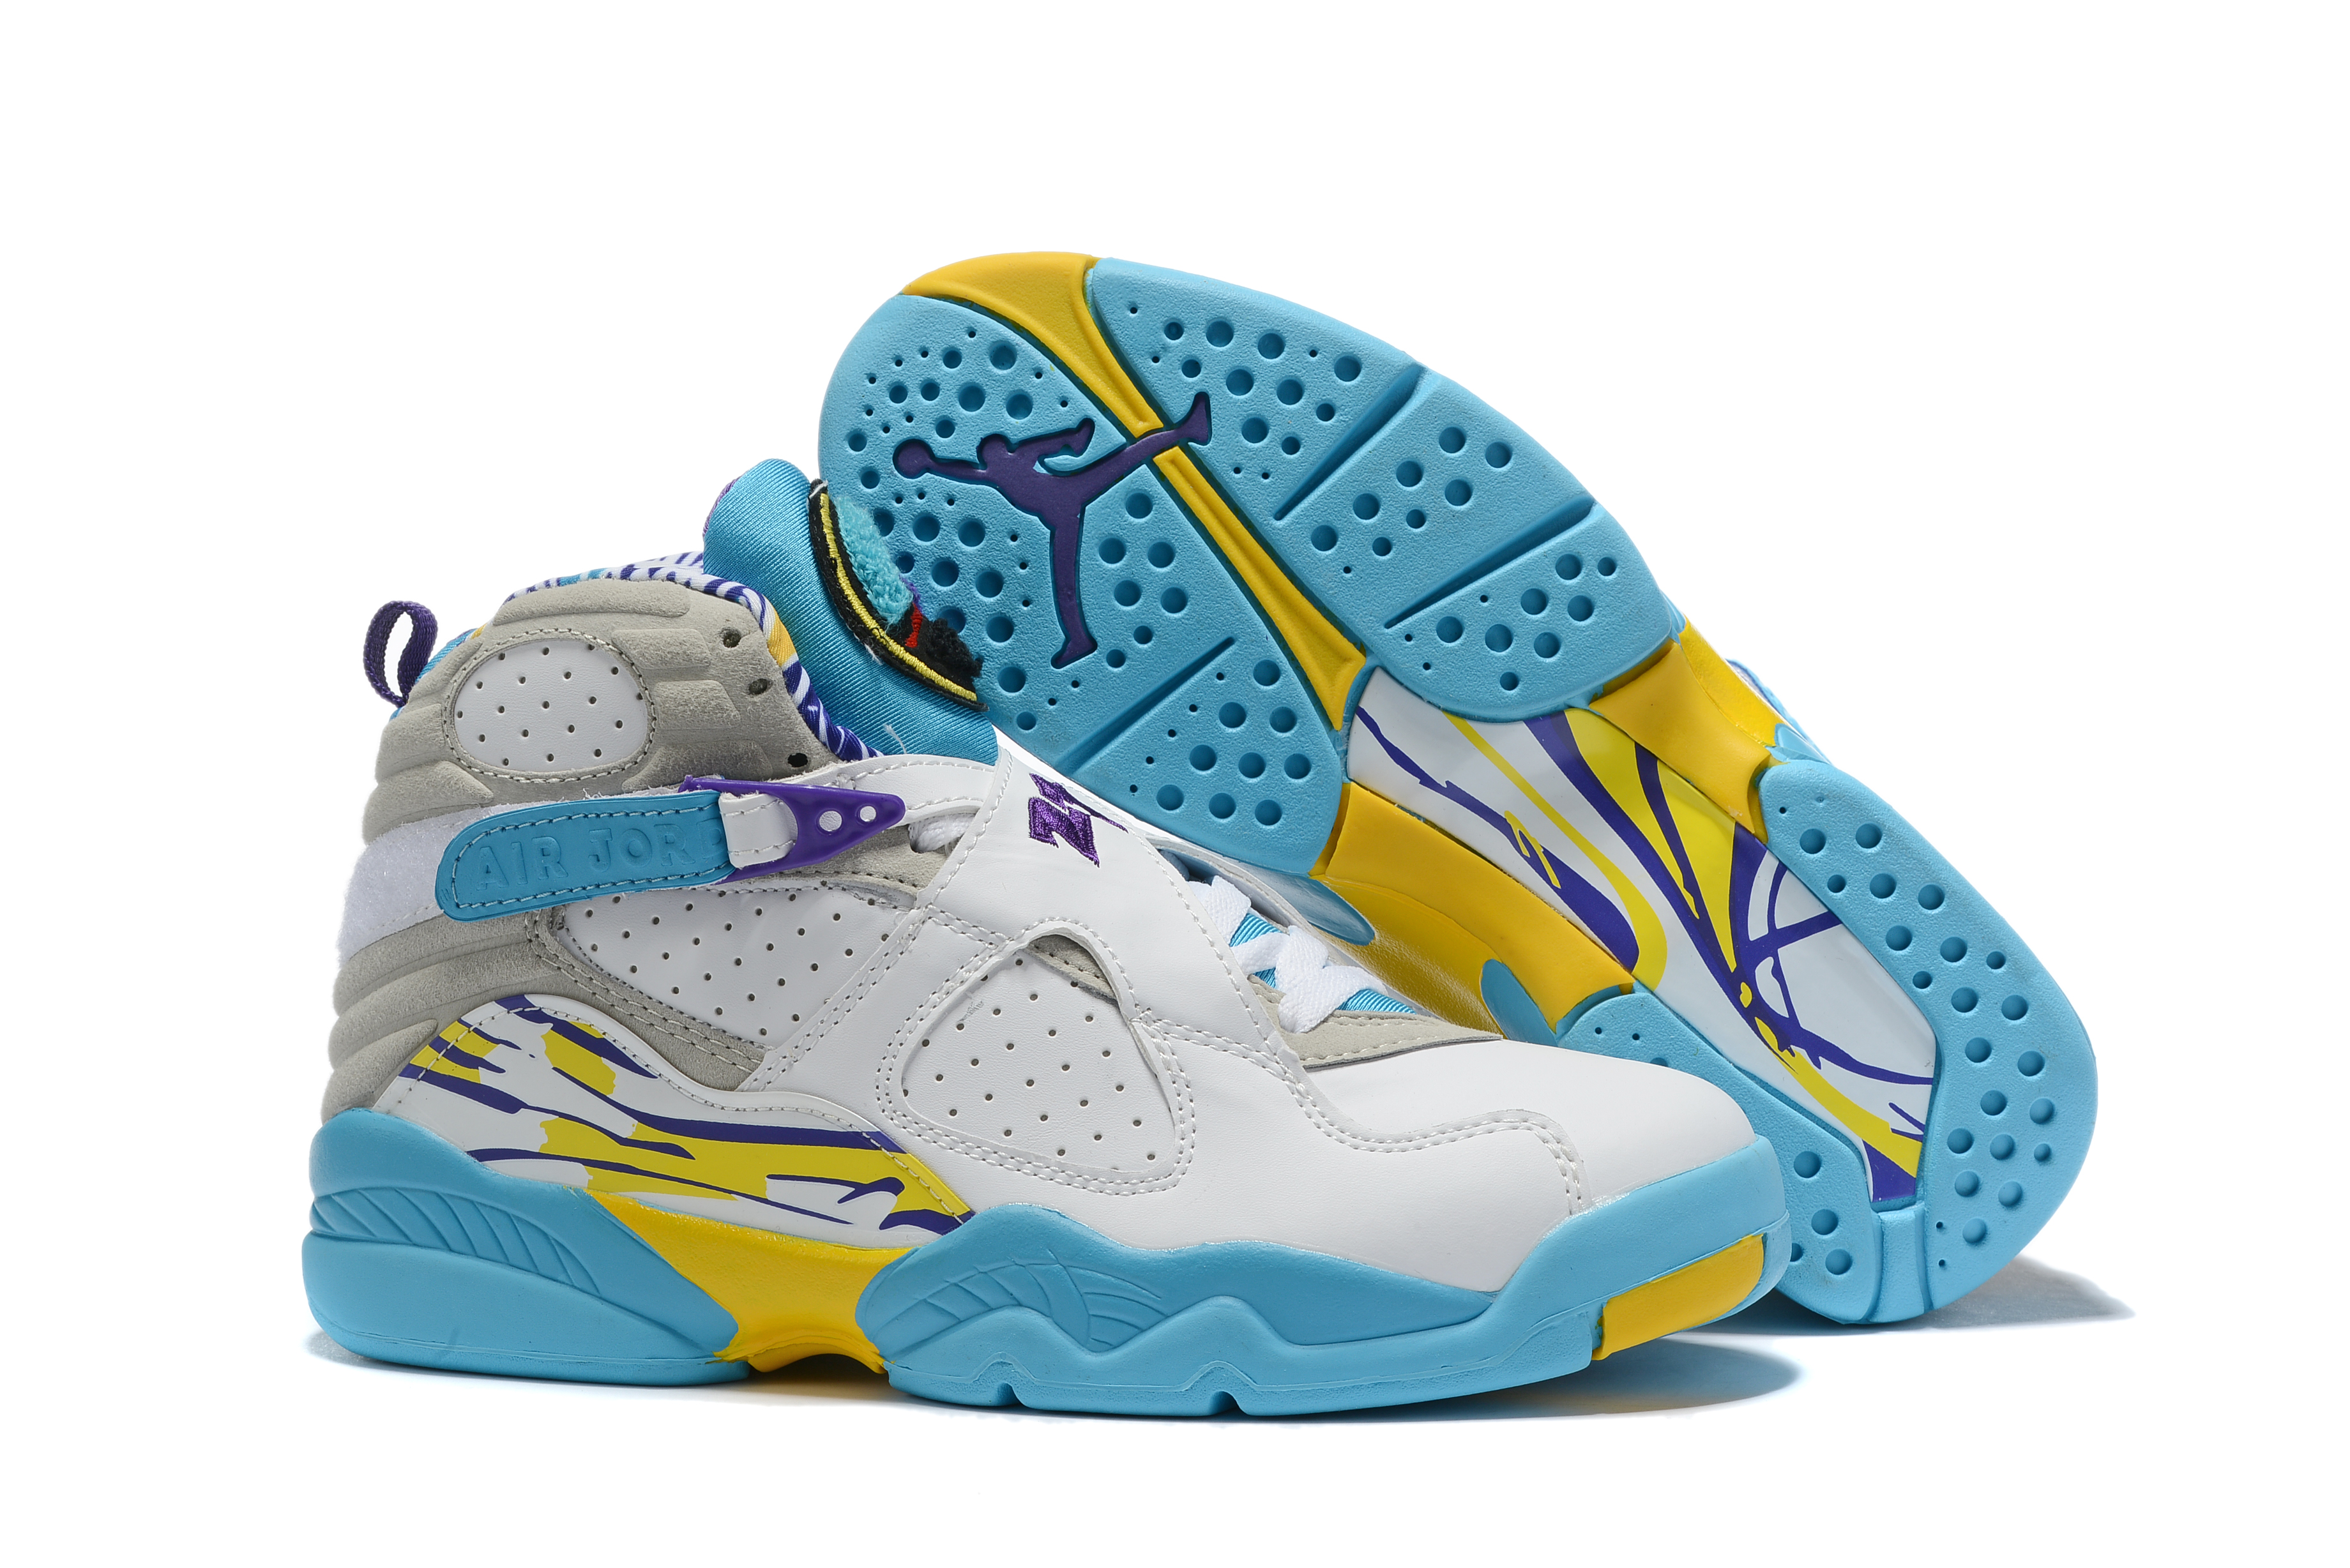 Jordan Shoes 8 White Blue Yellow For Sale